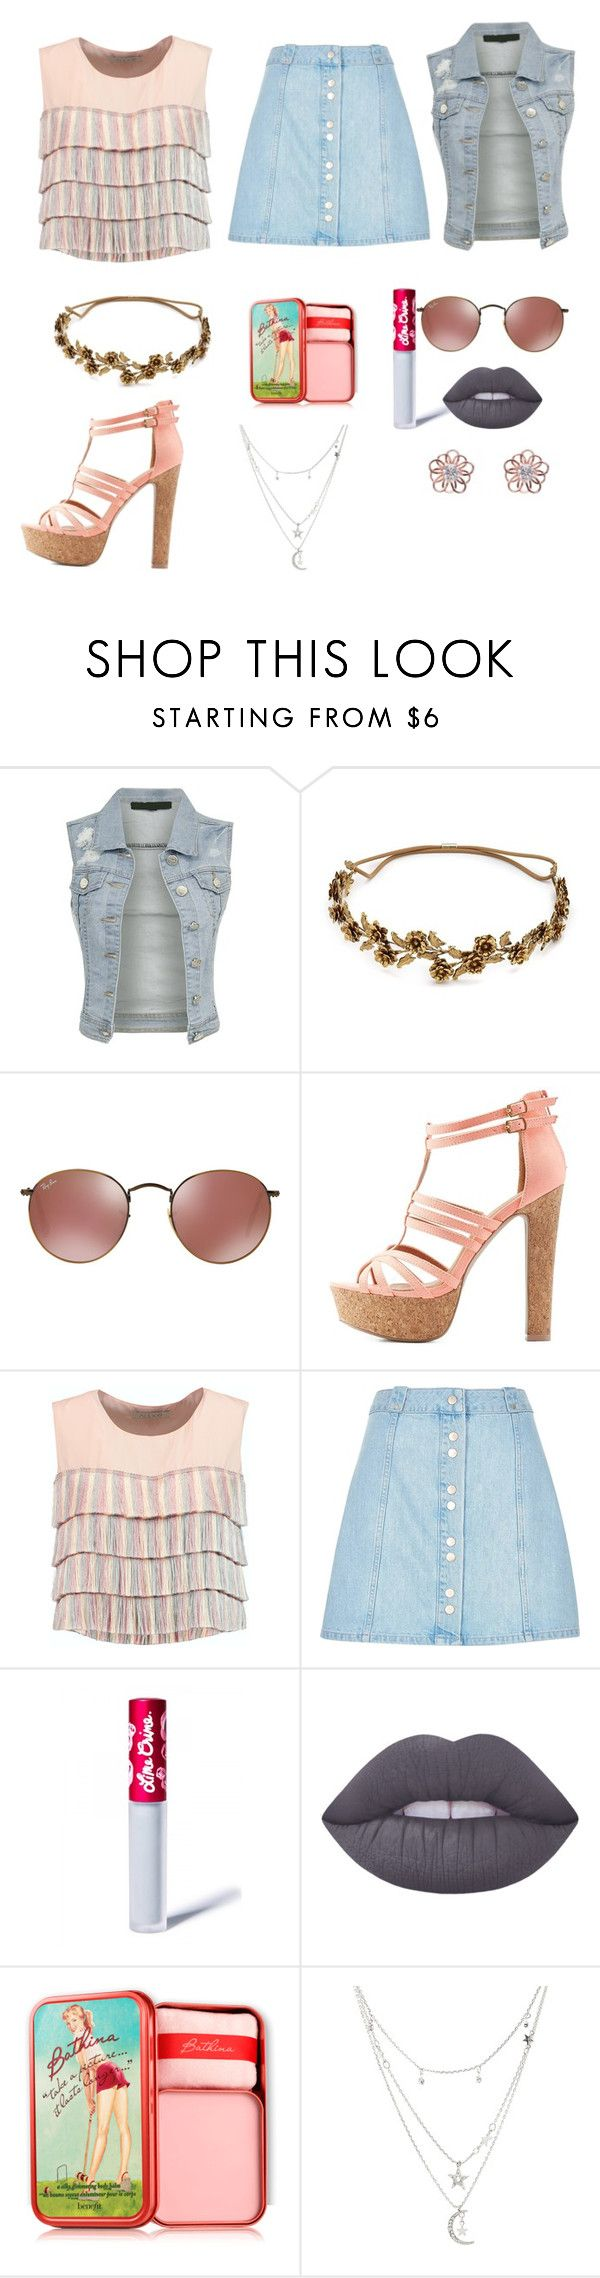 """""""Pink and blue"""" by maura-stacks ❤ liked on Polyvore featuring Jennifer Behr, Charlotte Russe, Alexis, River Island, Lime Crime, Benefit and kitsch island"""